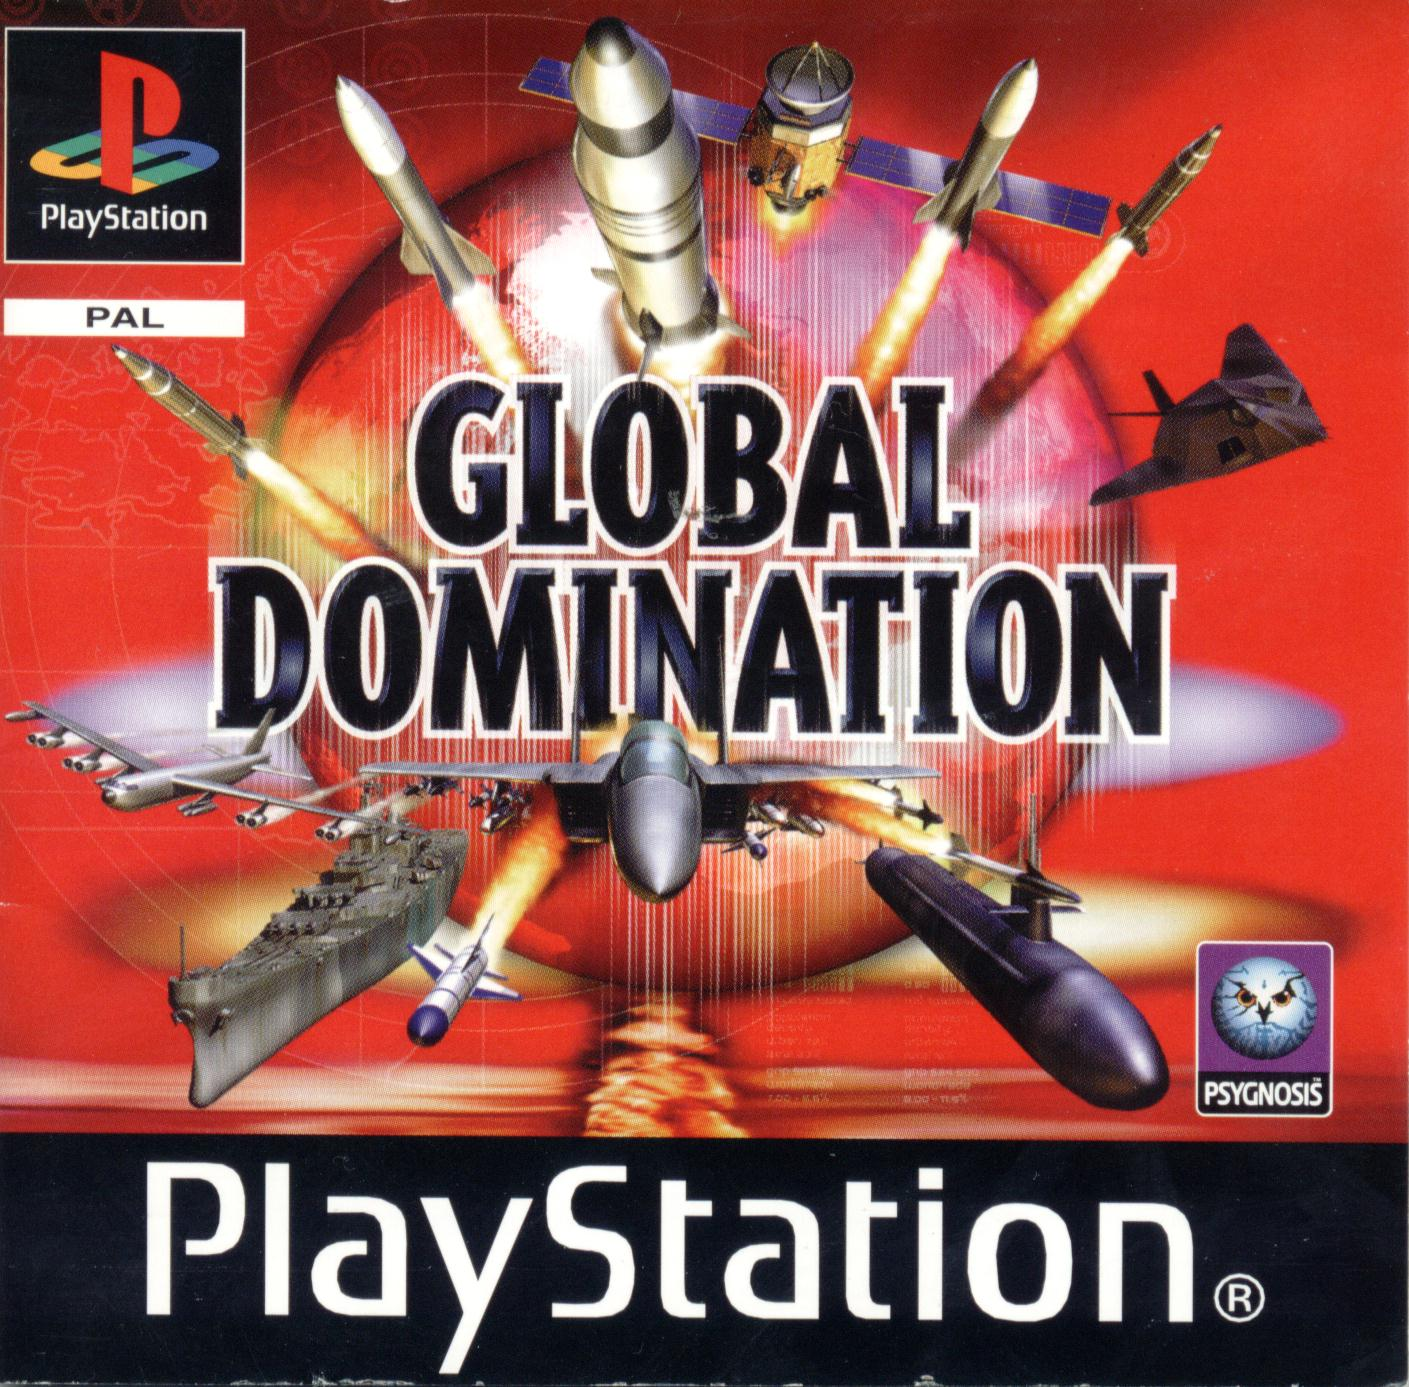 Global Domination Psx 49